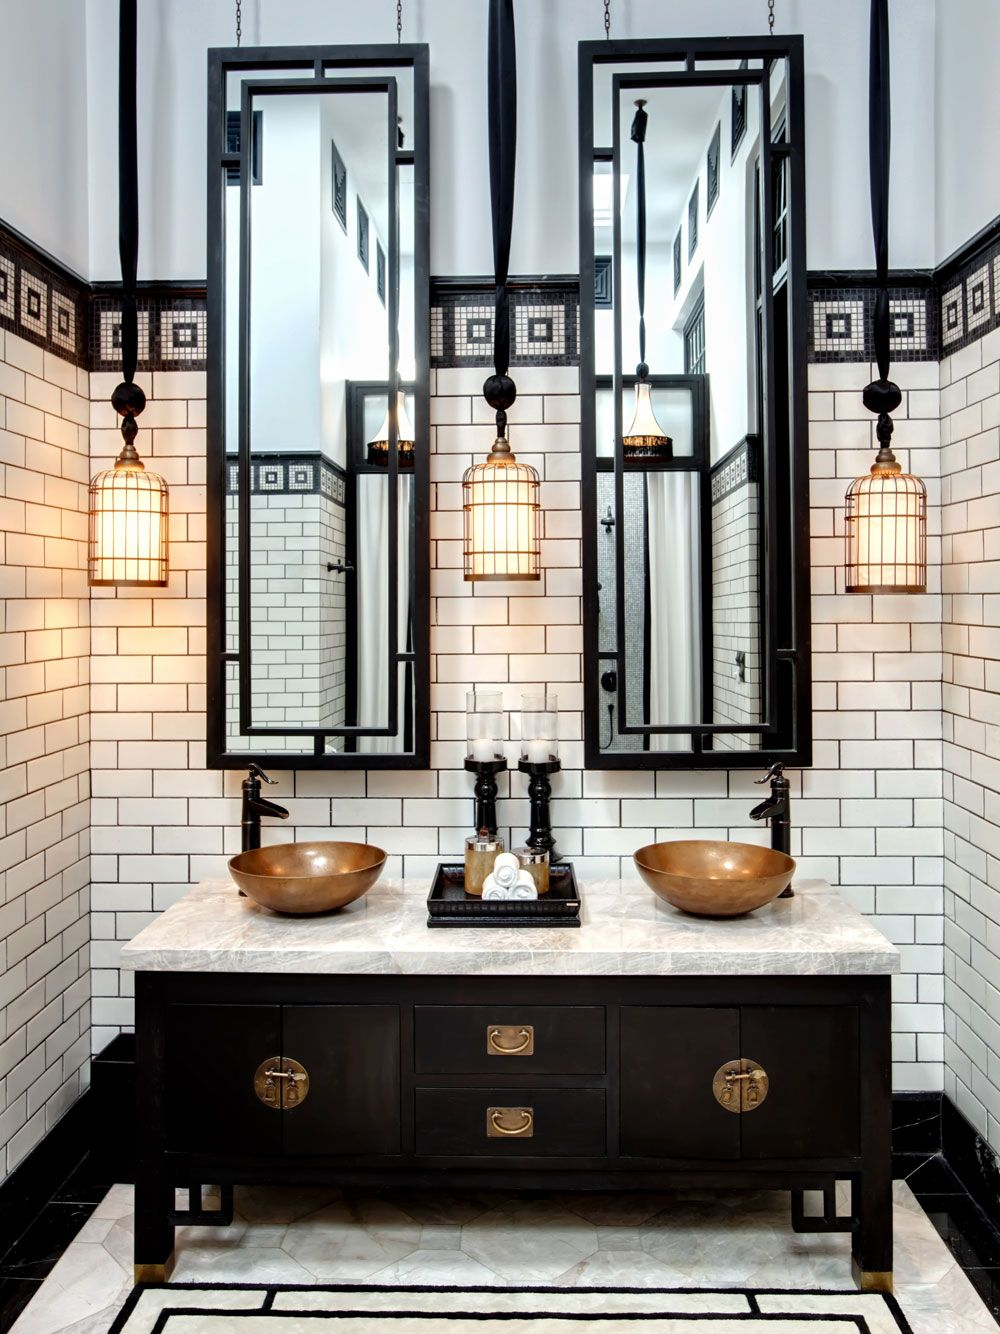 Bathroom at the Siam Hotel in Bangkok, Thailand designed by ...